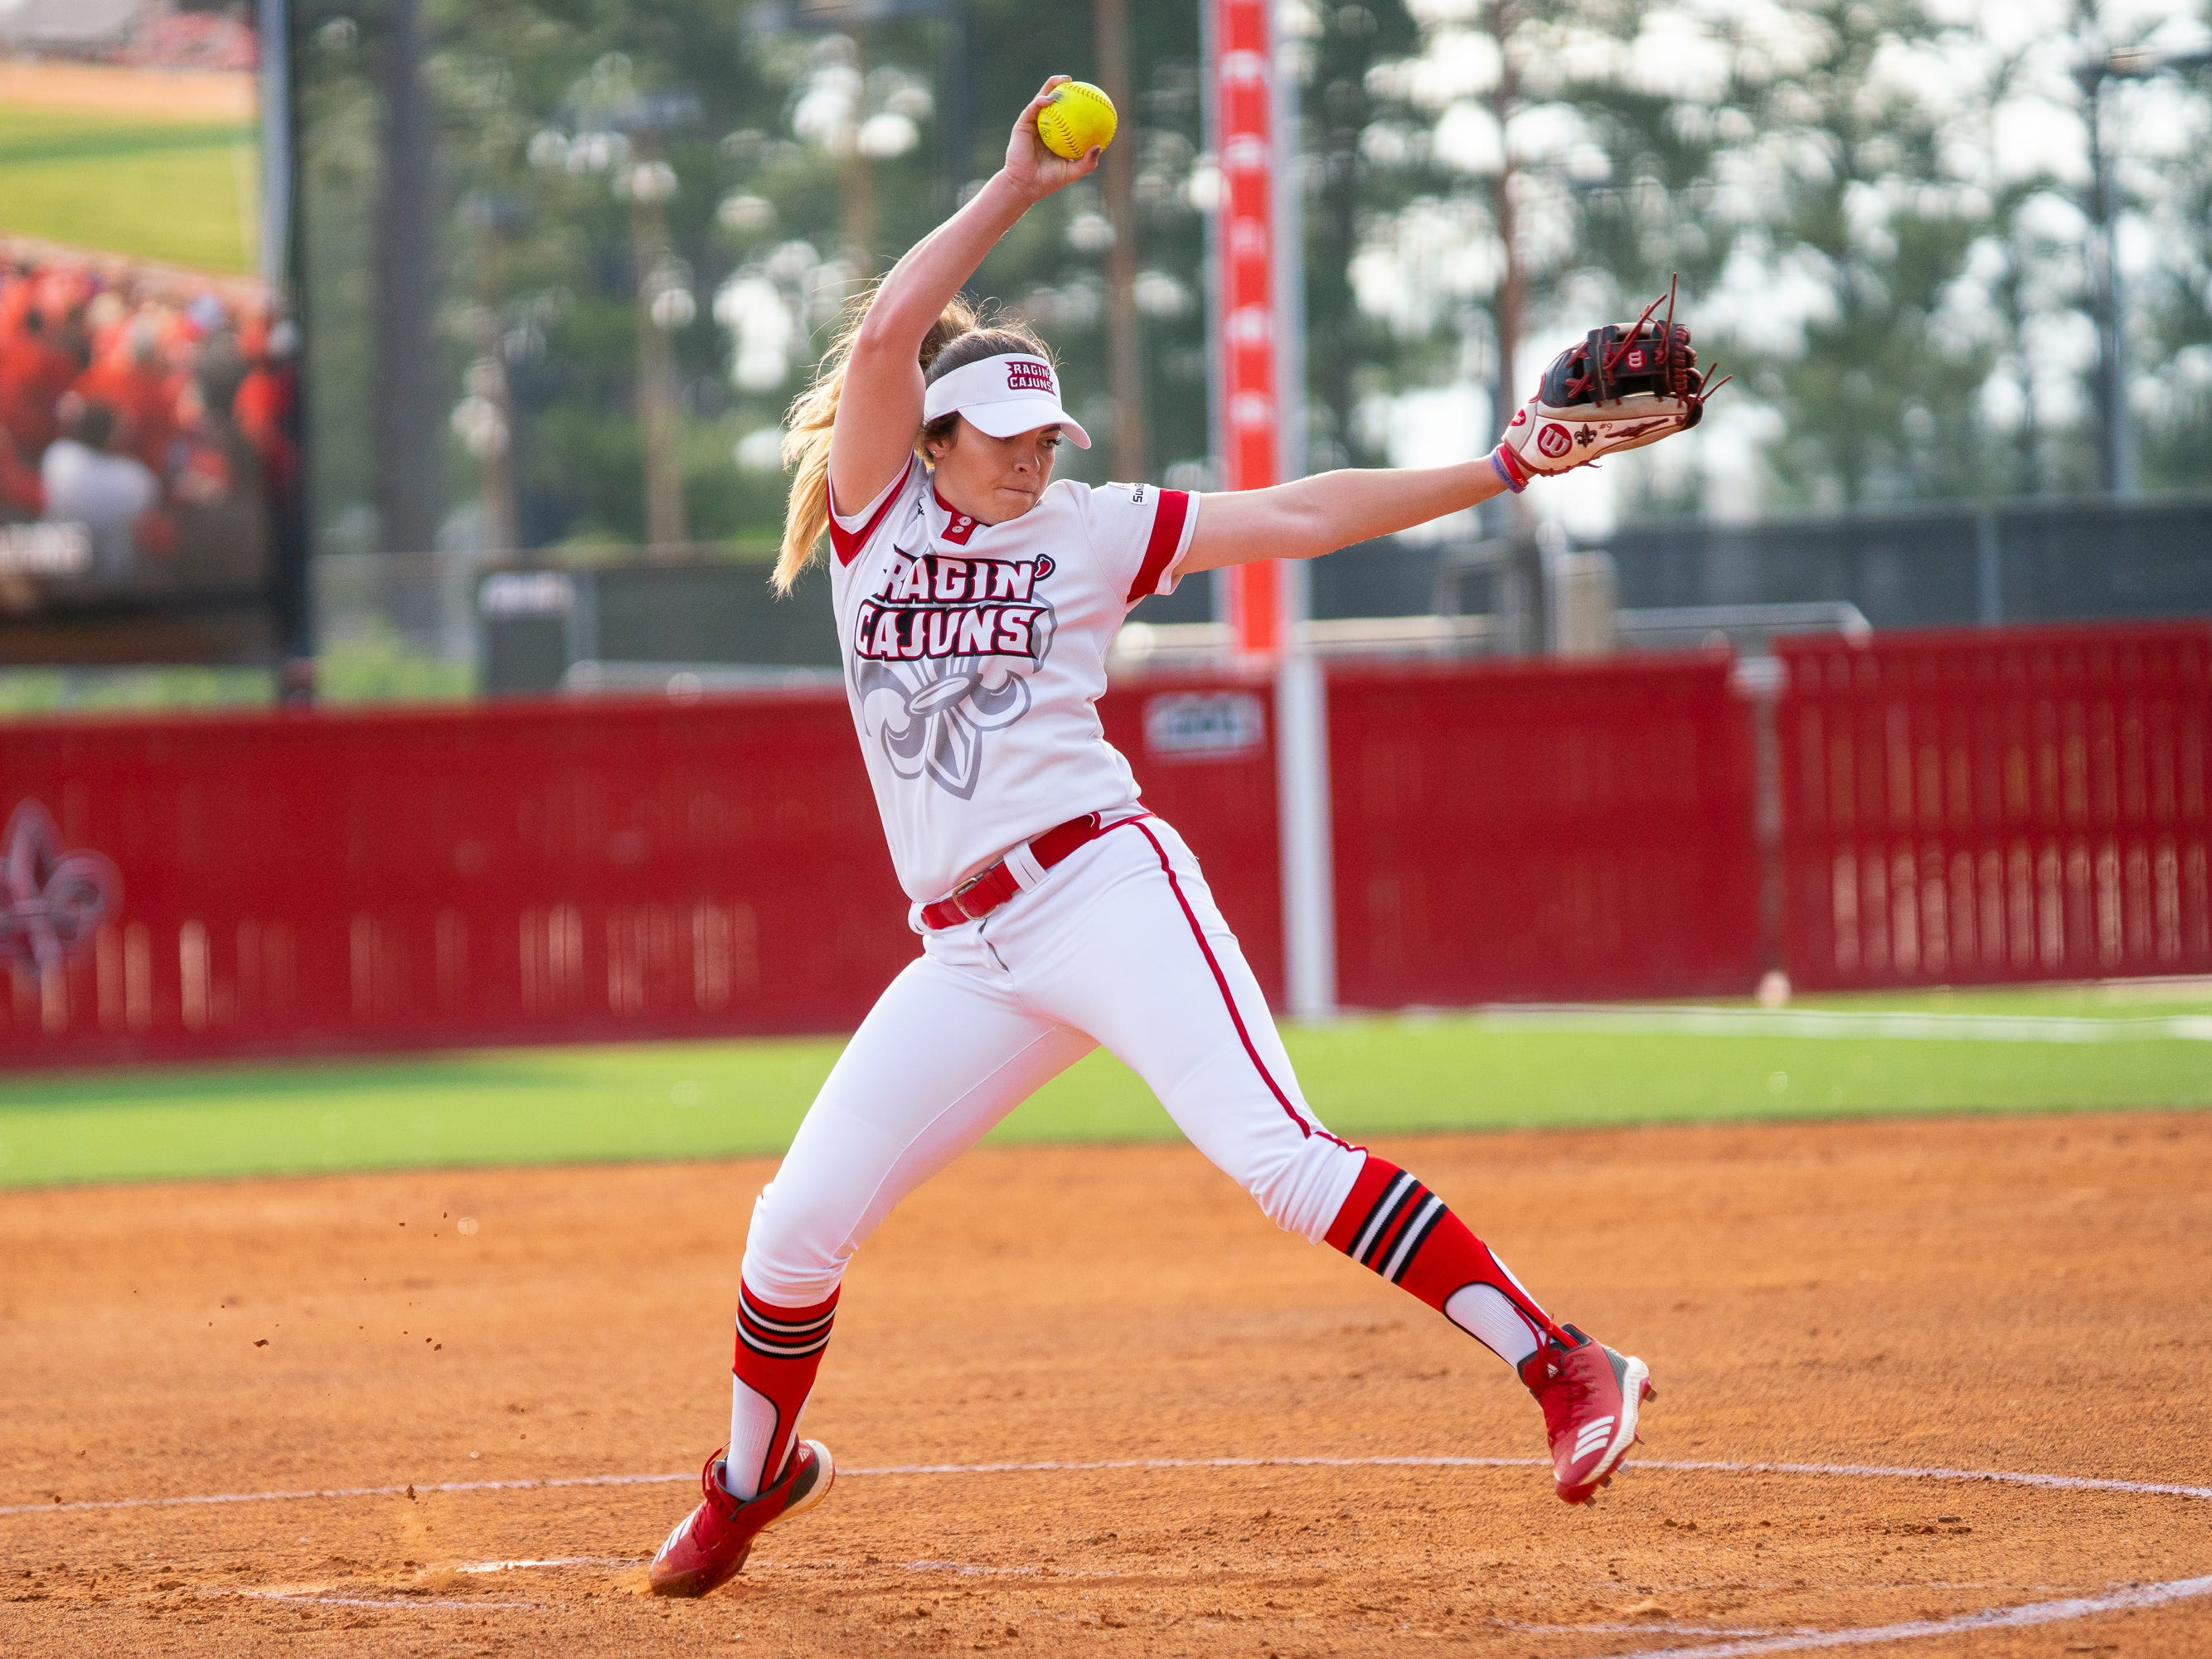 UL's Summer Ellyson throws a pitch to the batter as the Ragin' Cajuns play against the California Golden Bears at Lamson Park on February 11, 2019.